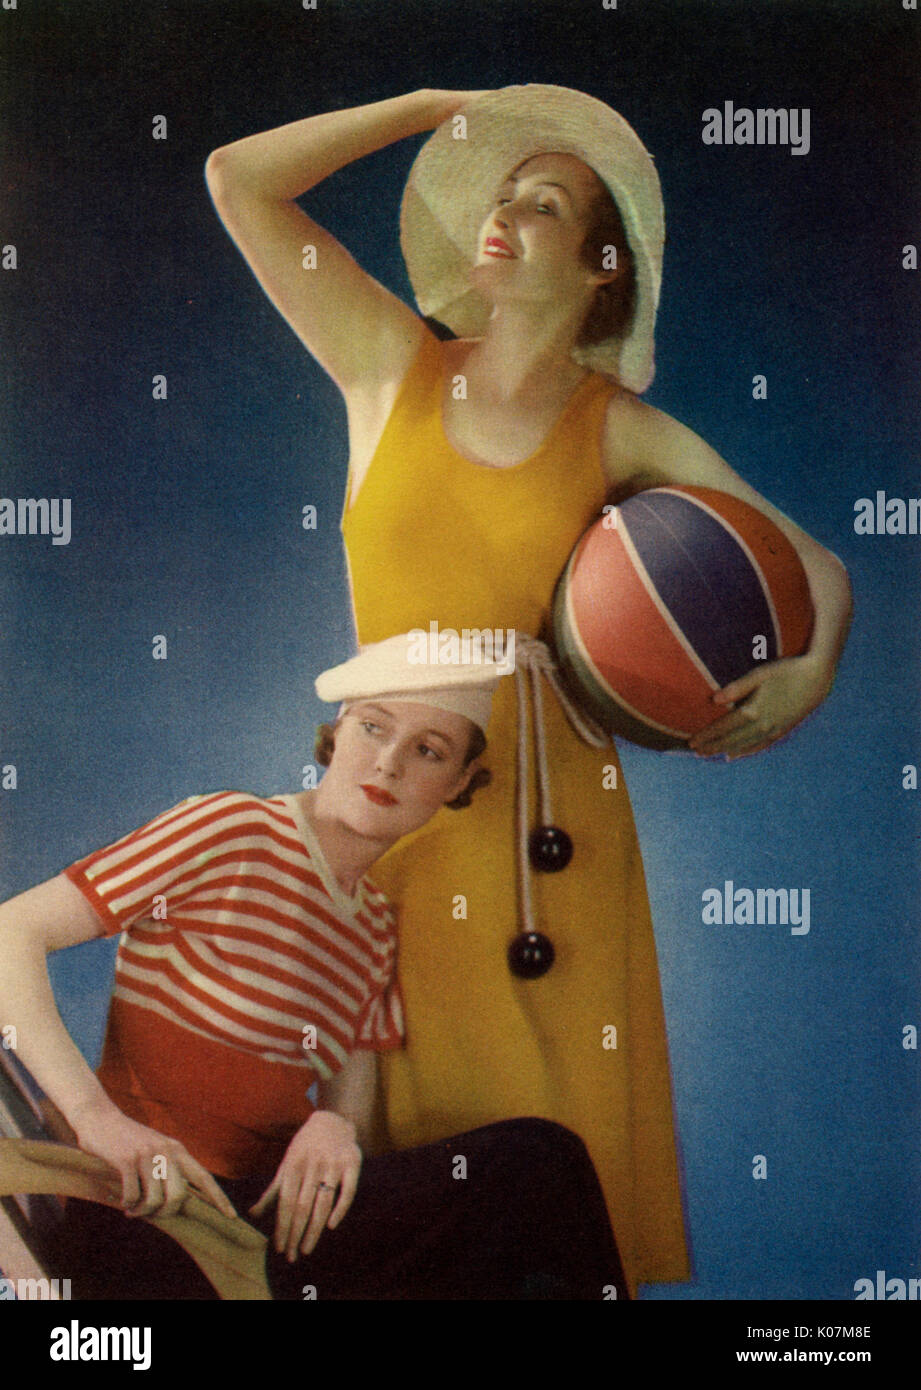 Two models posing in nautical style fashions, popular in the 1930s.     Date: 1934 - Stock Image